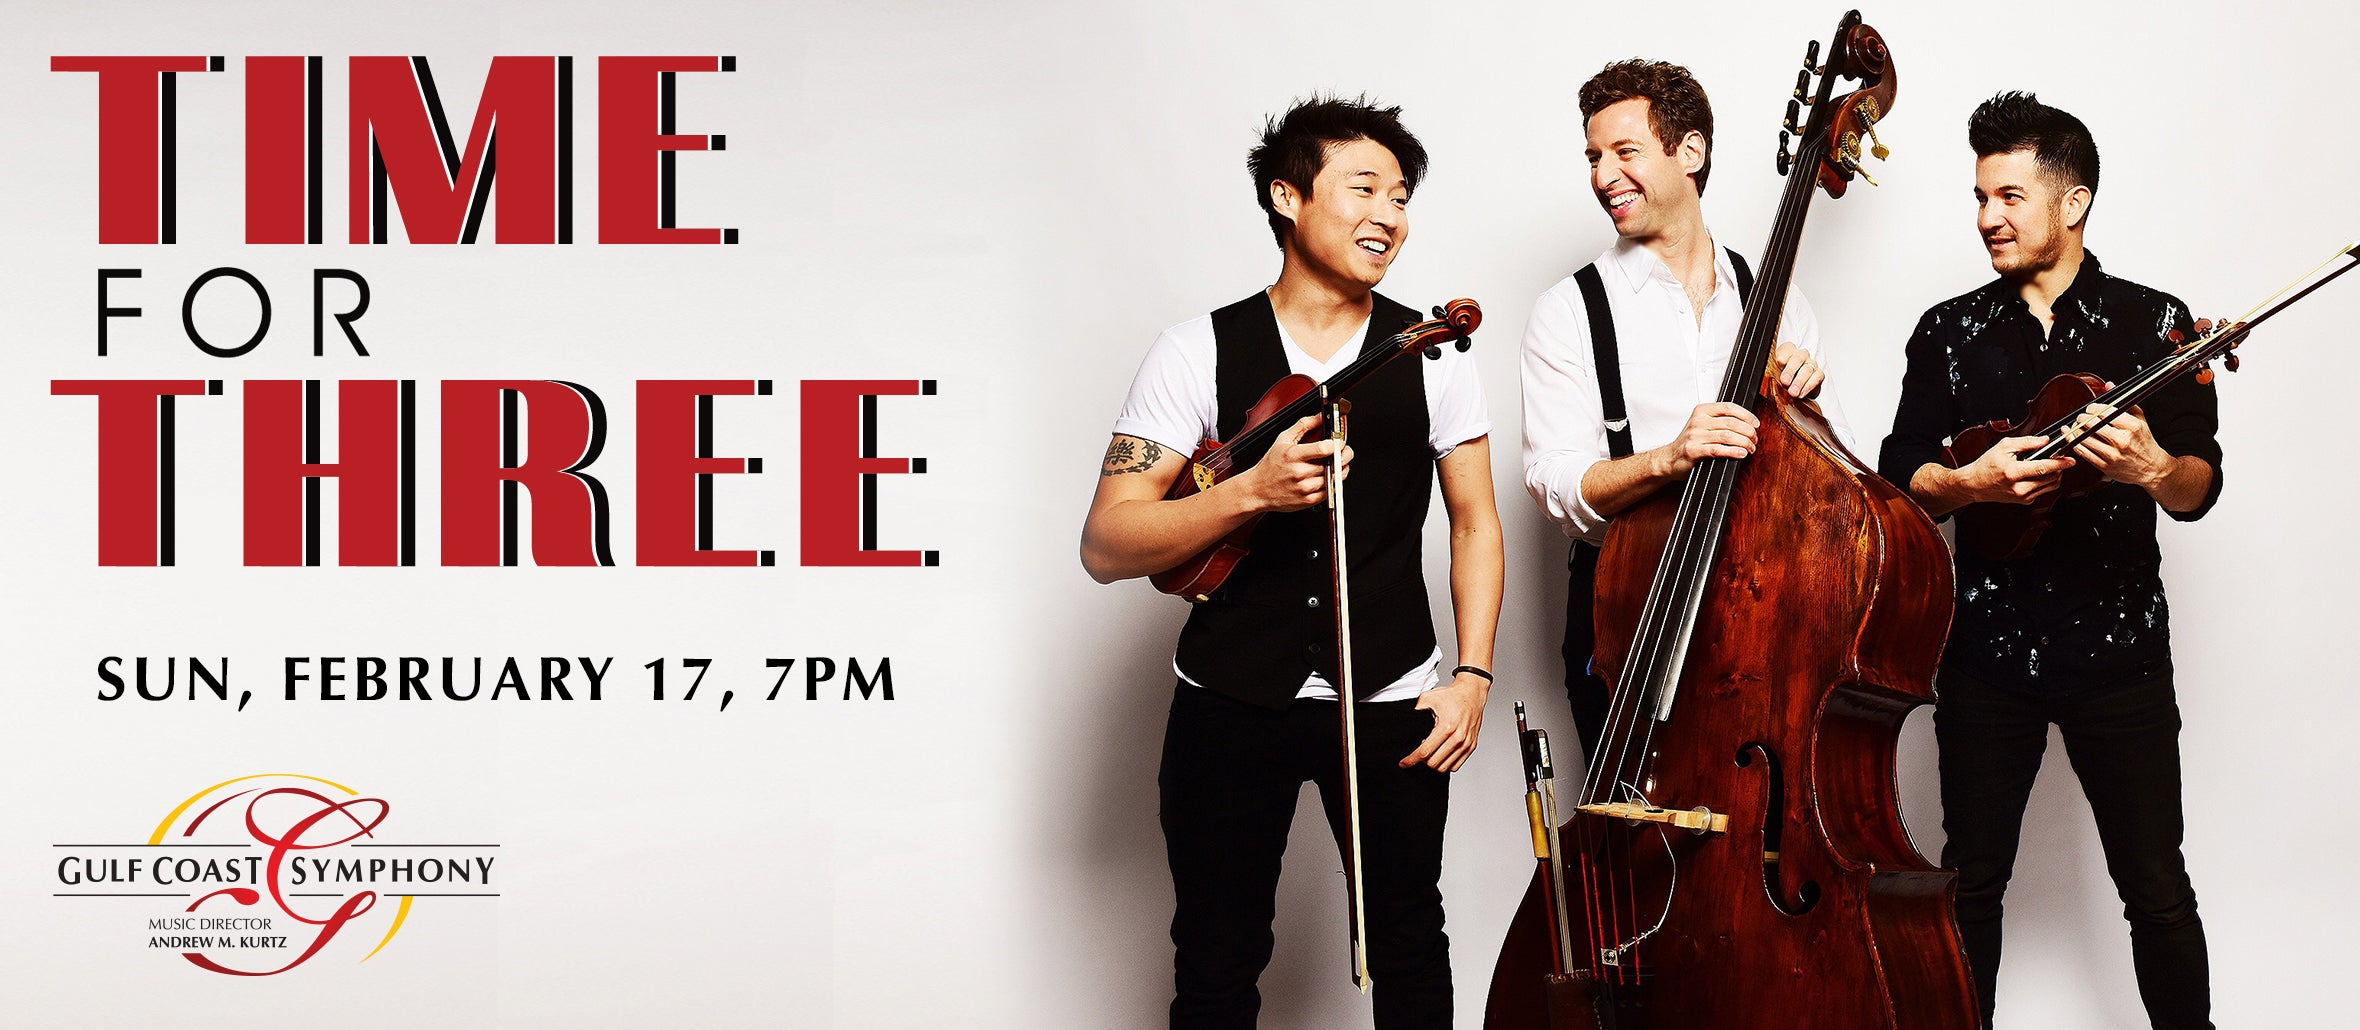 Gulf Coast Symphony: Time for Three